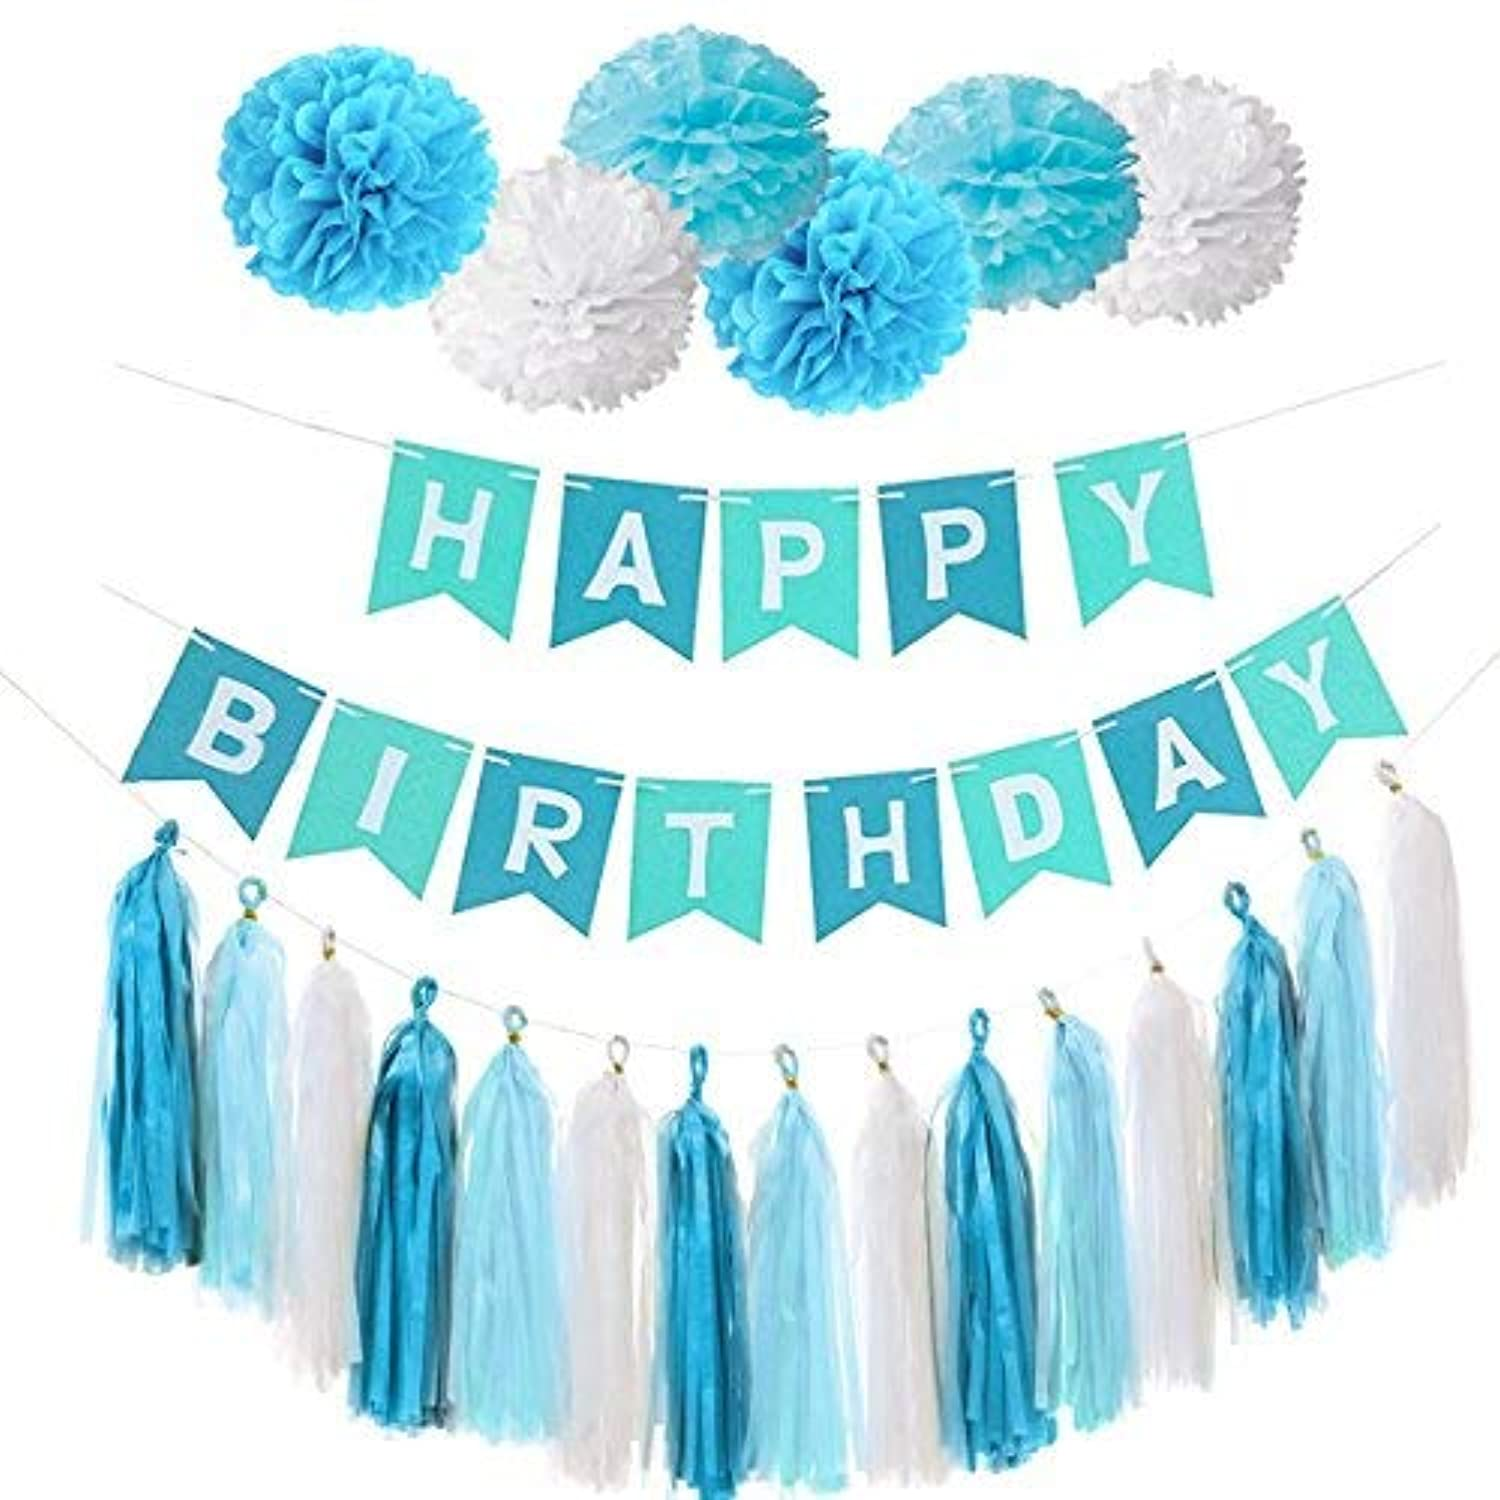 Happy Birthday Banner Flag Bunting - Set of Tissue Paper Pom Poms Flowers and Tassels For Birthday Party Decoration (Sky Blue Set) [並行輸入品]